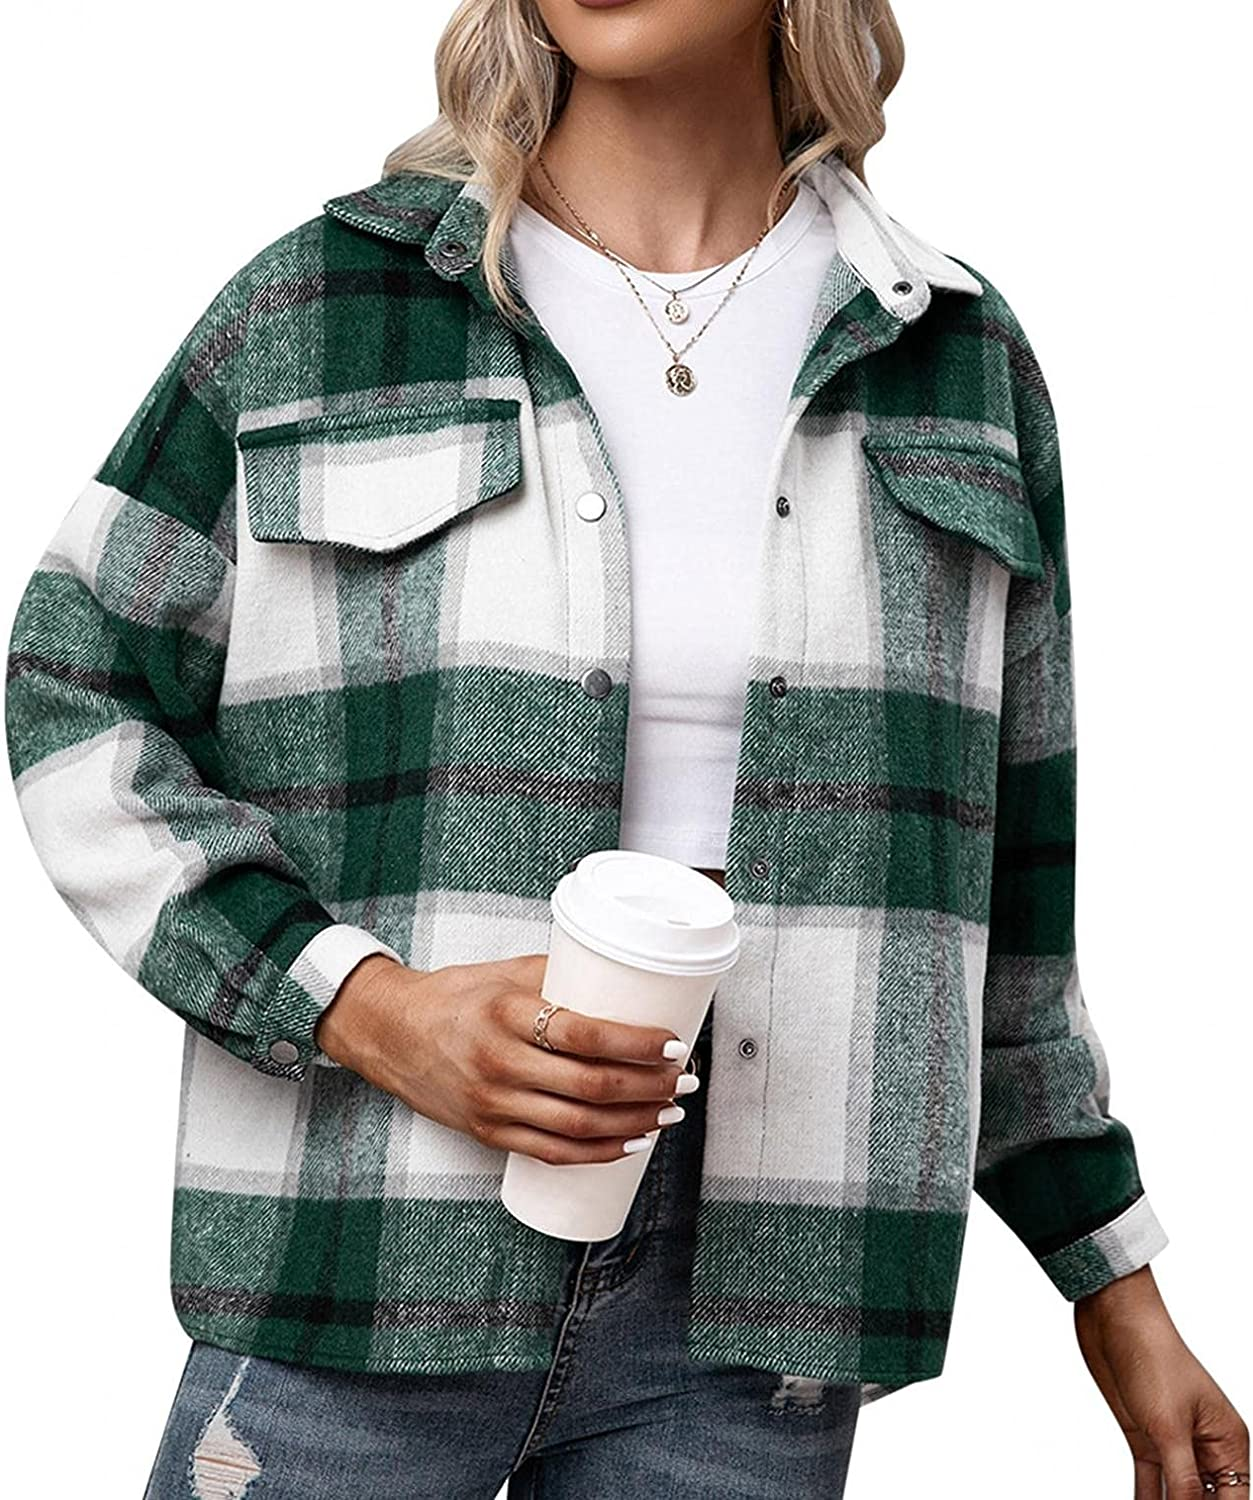 GXLONG Women Plaid Jacket Ladies Long Sleeve Casual Shirt Coat Botton Down Color Block Blouse Open Front Top with Pockets